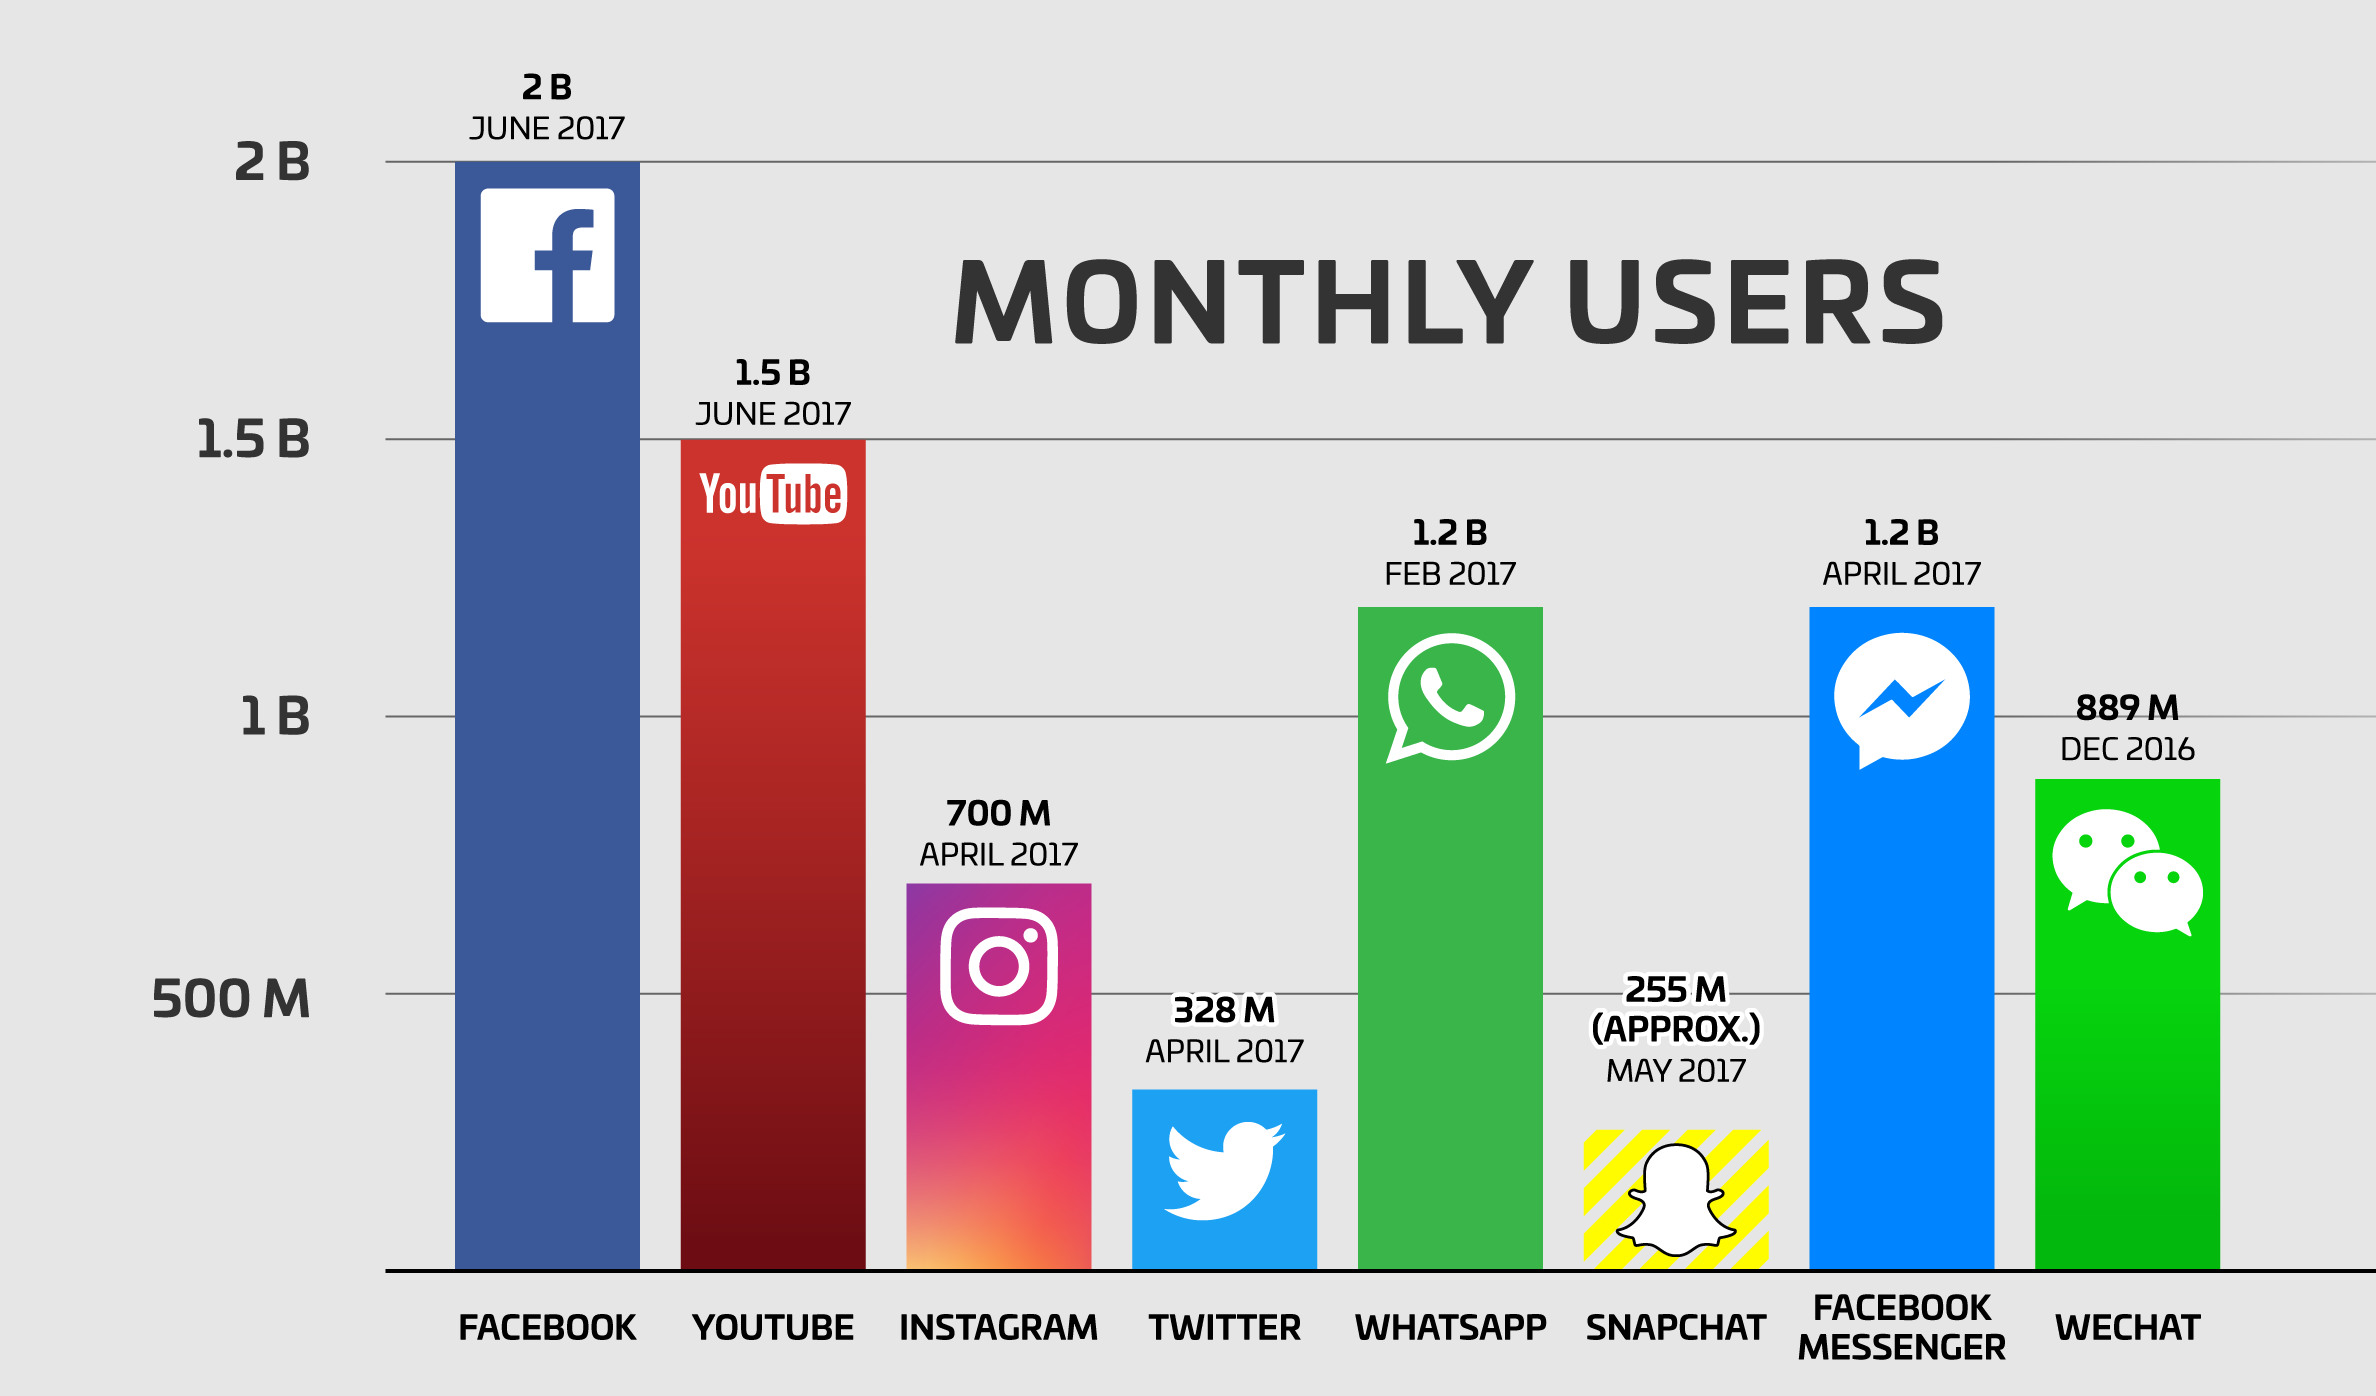 social-media-users-facebook-vs-snapchat-vs-instagram-vs-twitter-vs-whatsapp-vs-messenger-vs-wechat-2018-